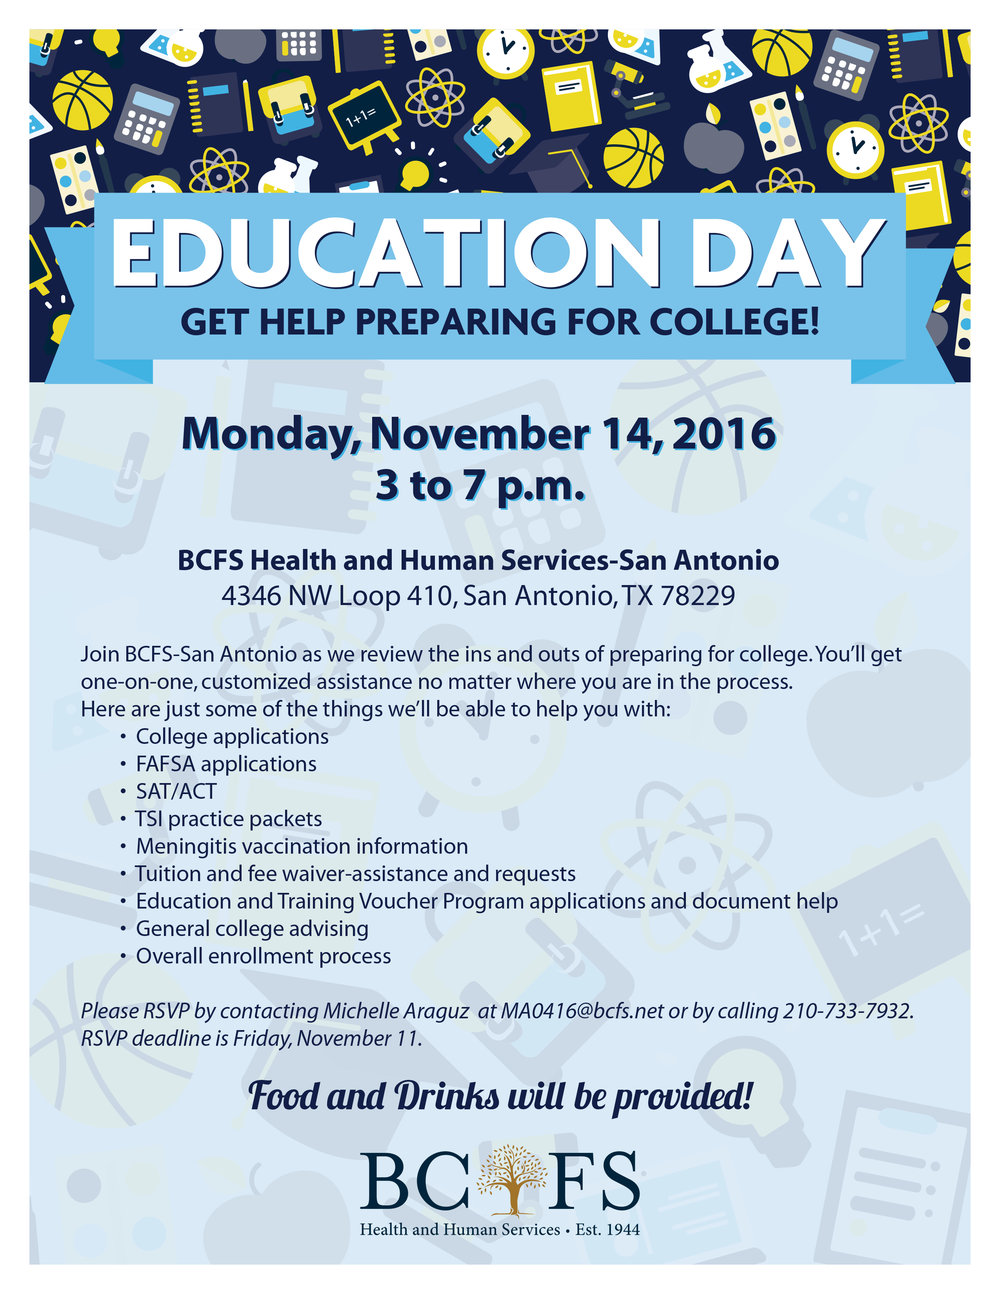 BCFSHHS-SA-EducationDay-2.jpg